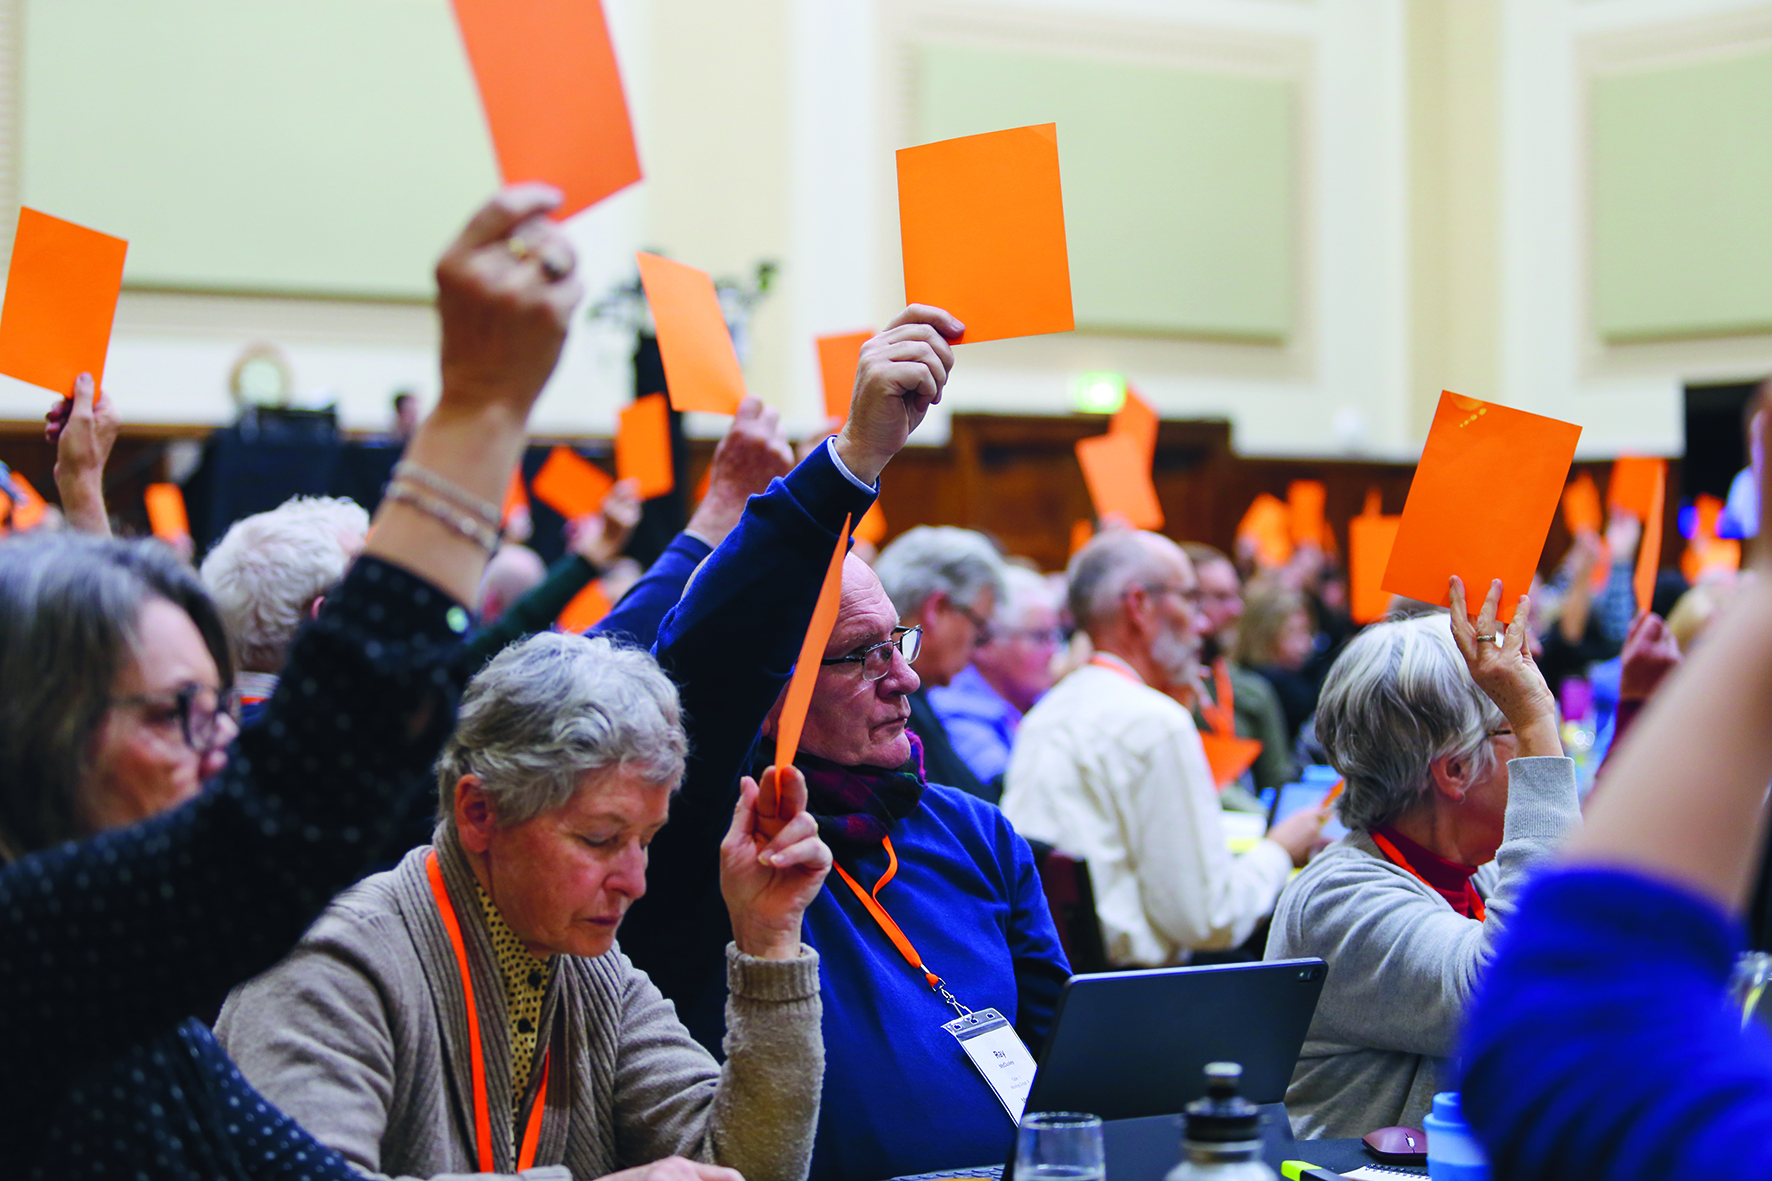 Synod meetings include reporting, information, deliberation and decision-making - as well as worship, prayer, Bible study, celebration, electing the next Moderator, and meeting new people from across the Synod.